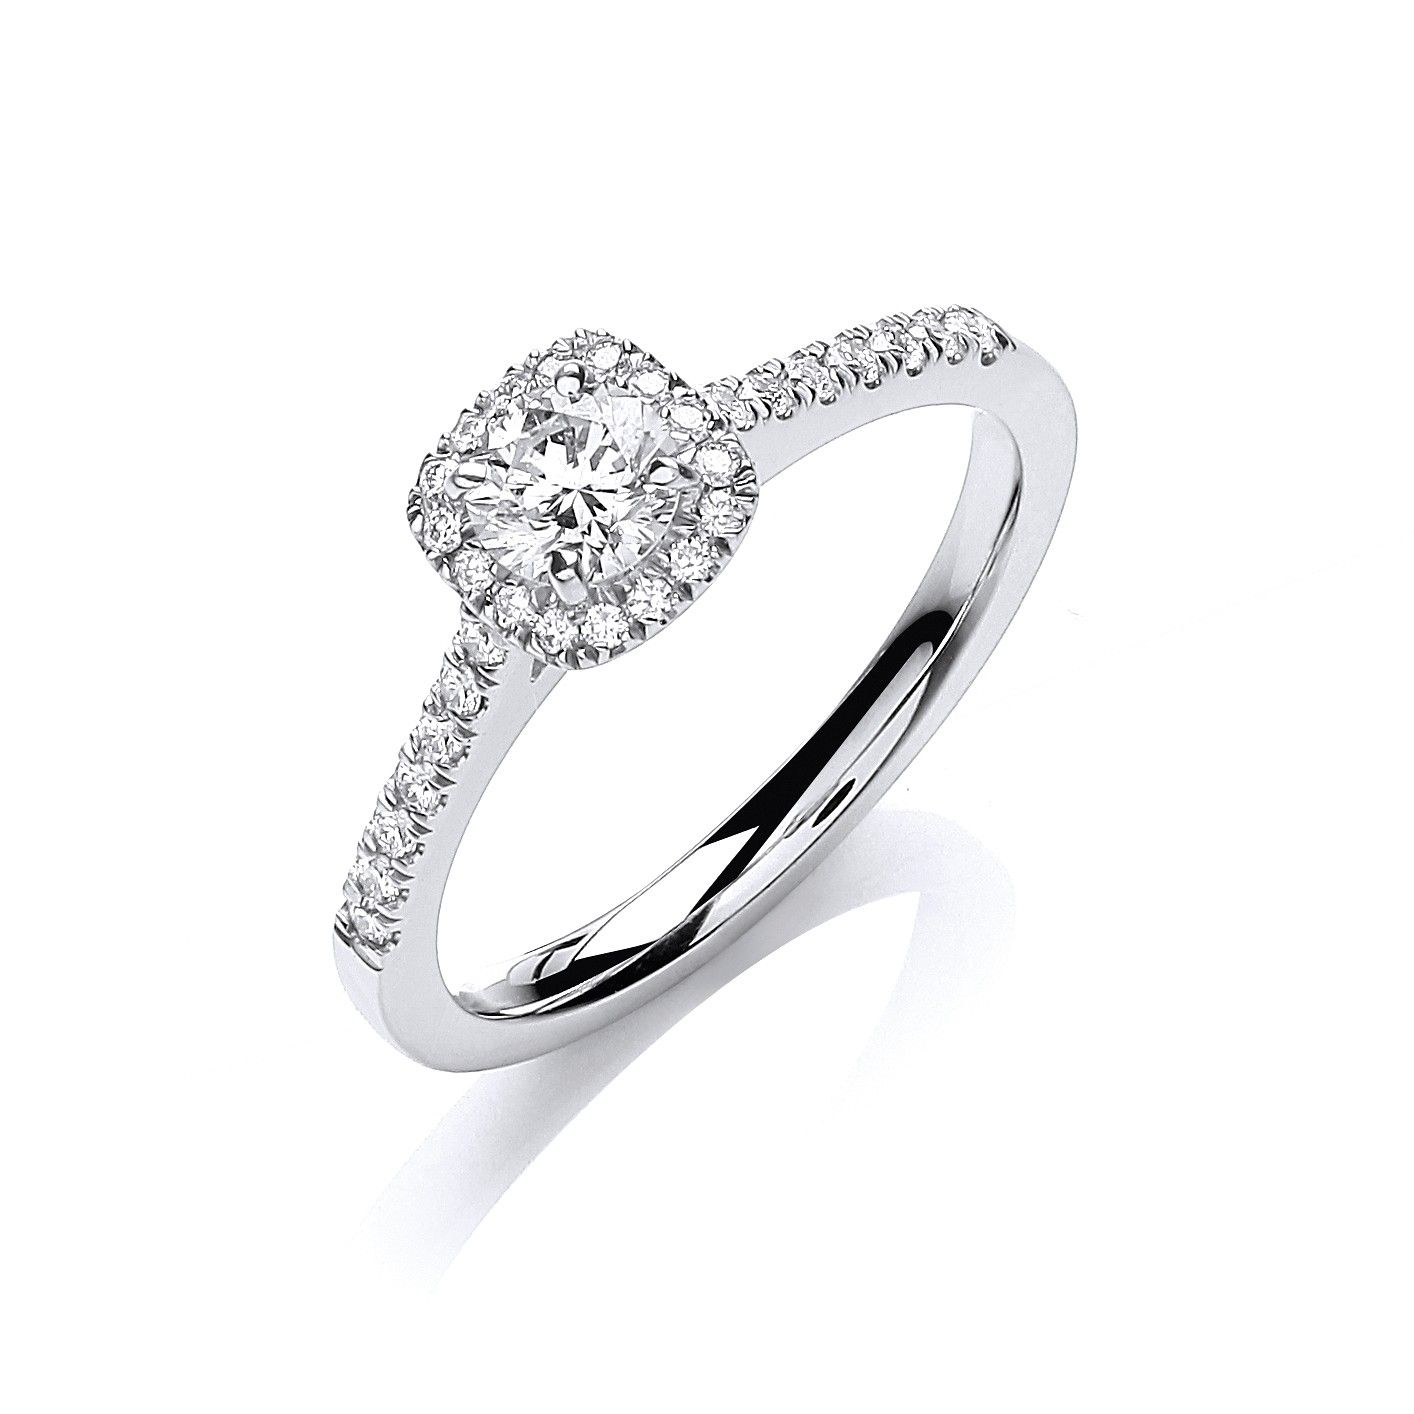 18ct White Gold 0.50cts Certificated Diamond Engagement Ring